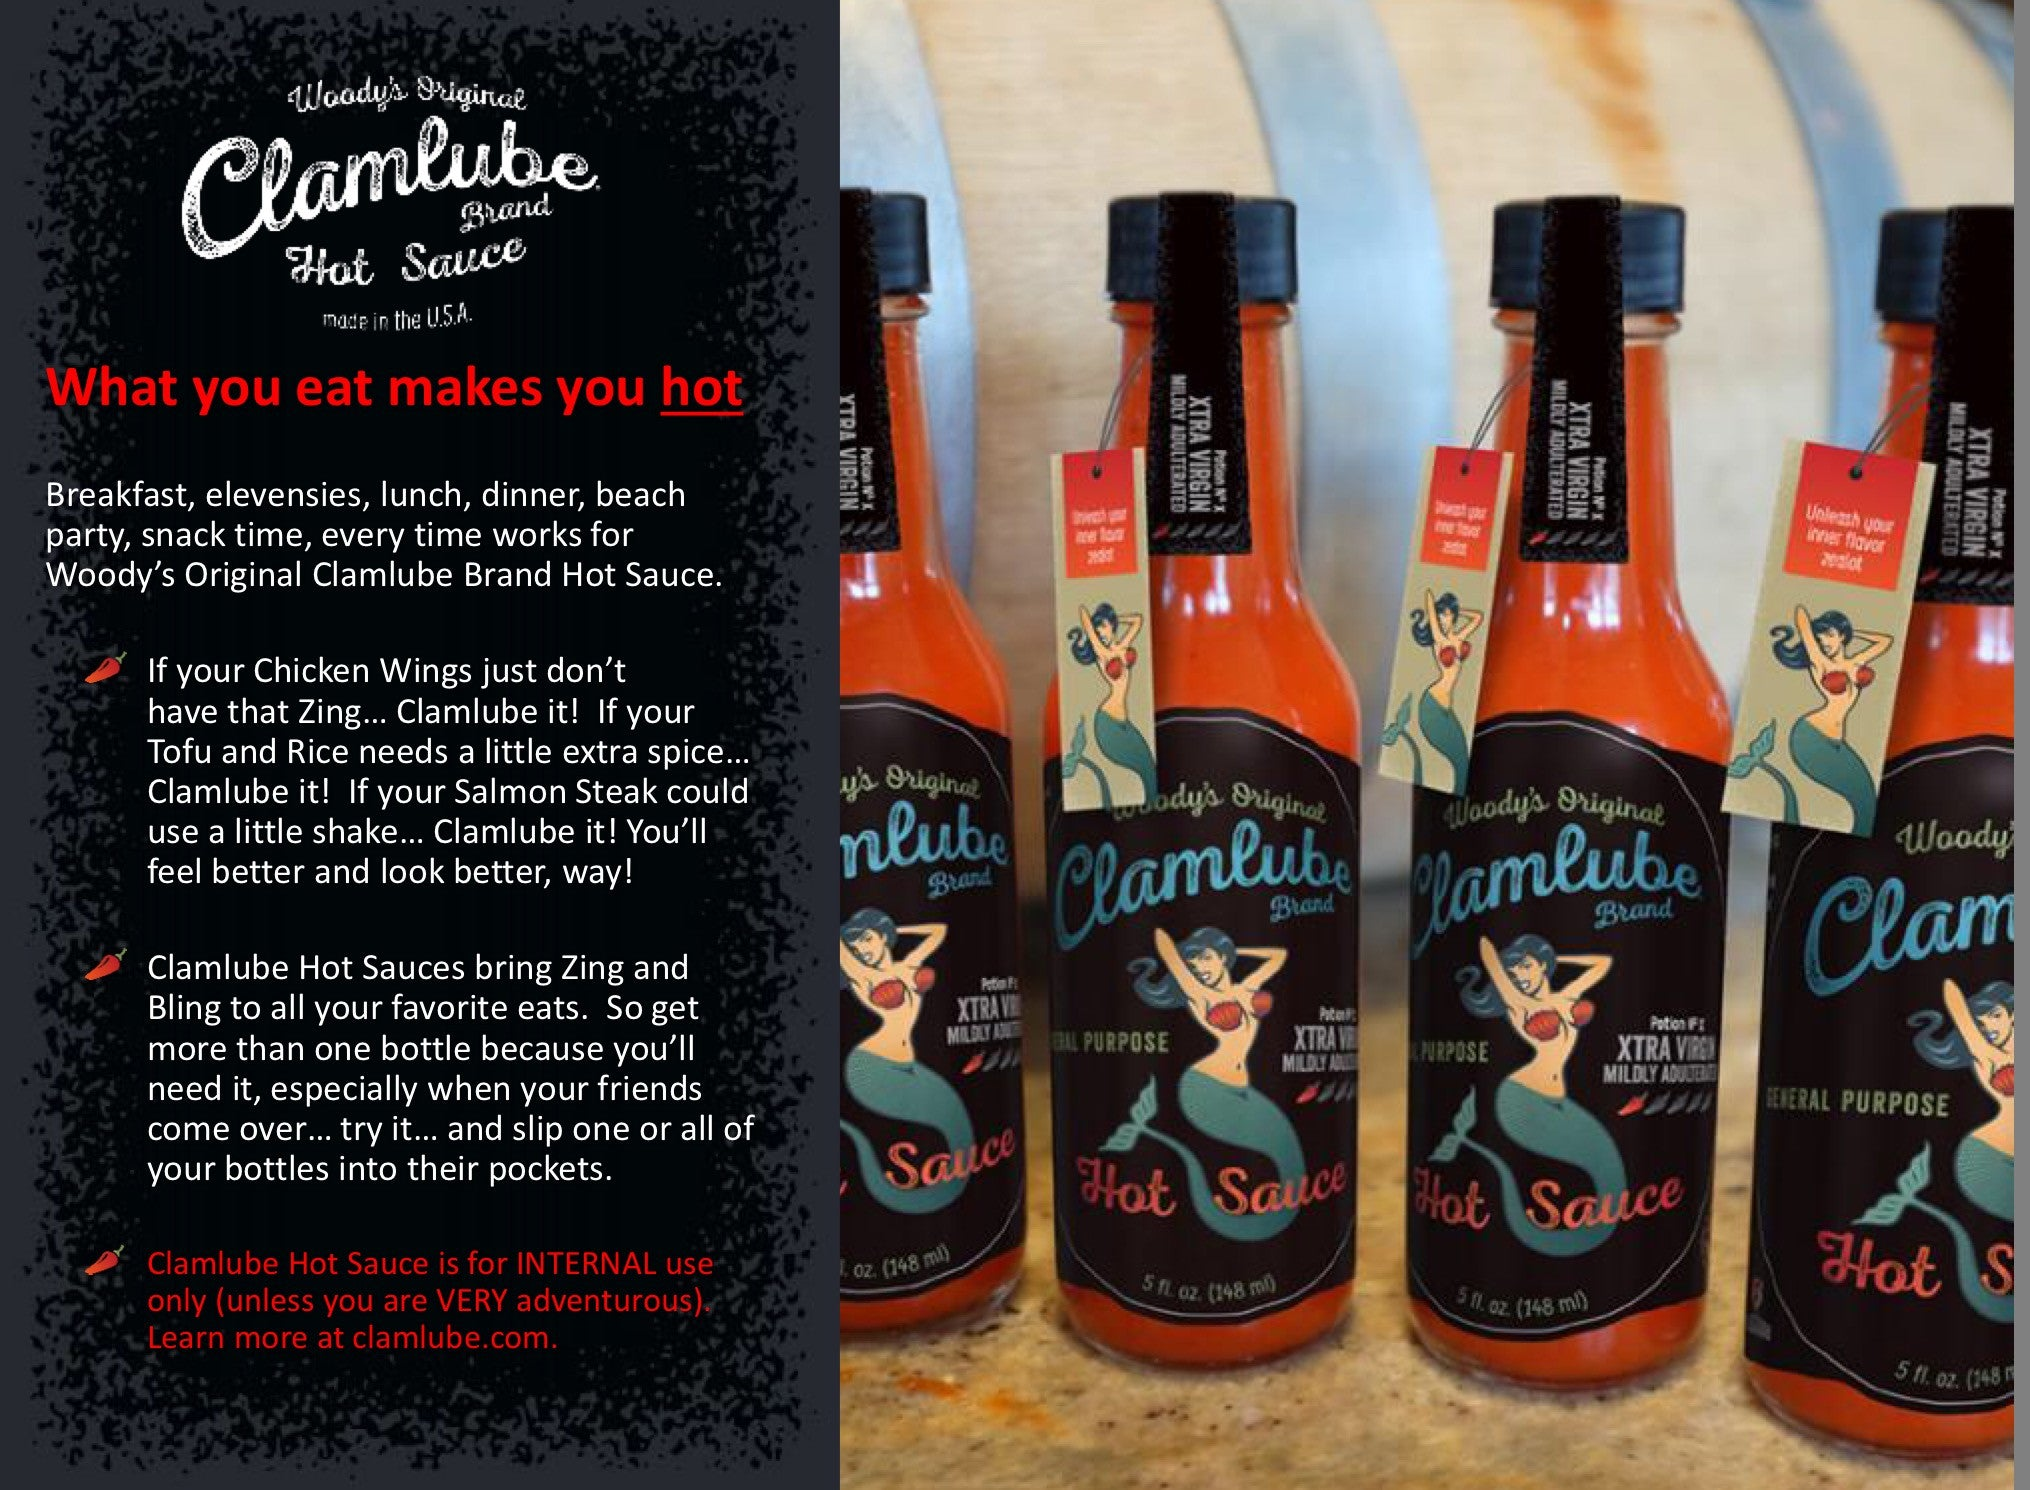 Clamlube Potion No.X Xtra Virgin Mildly Adulterated Hot Sauce - Celebrate Local, Shop The Best of Ohio - 2